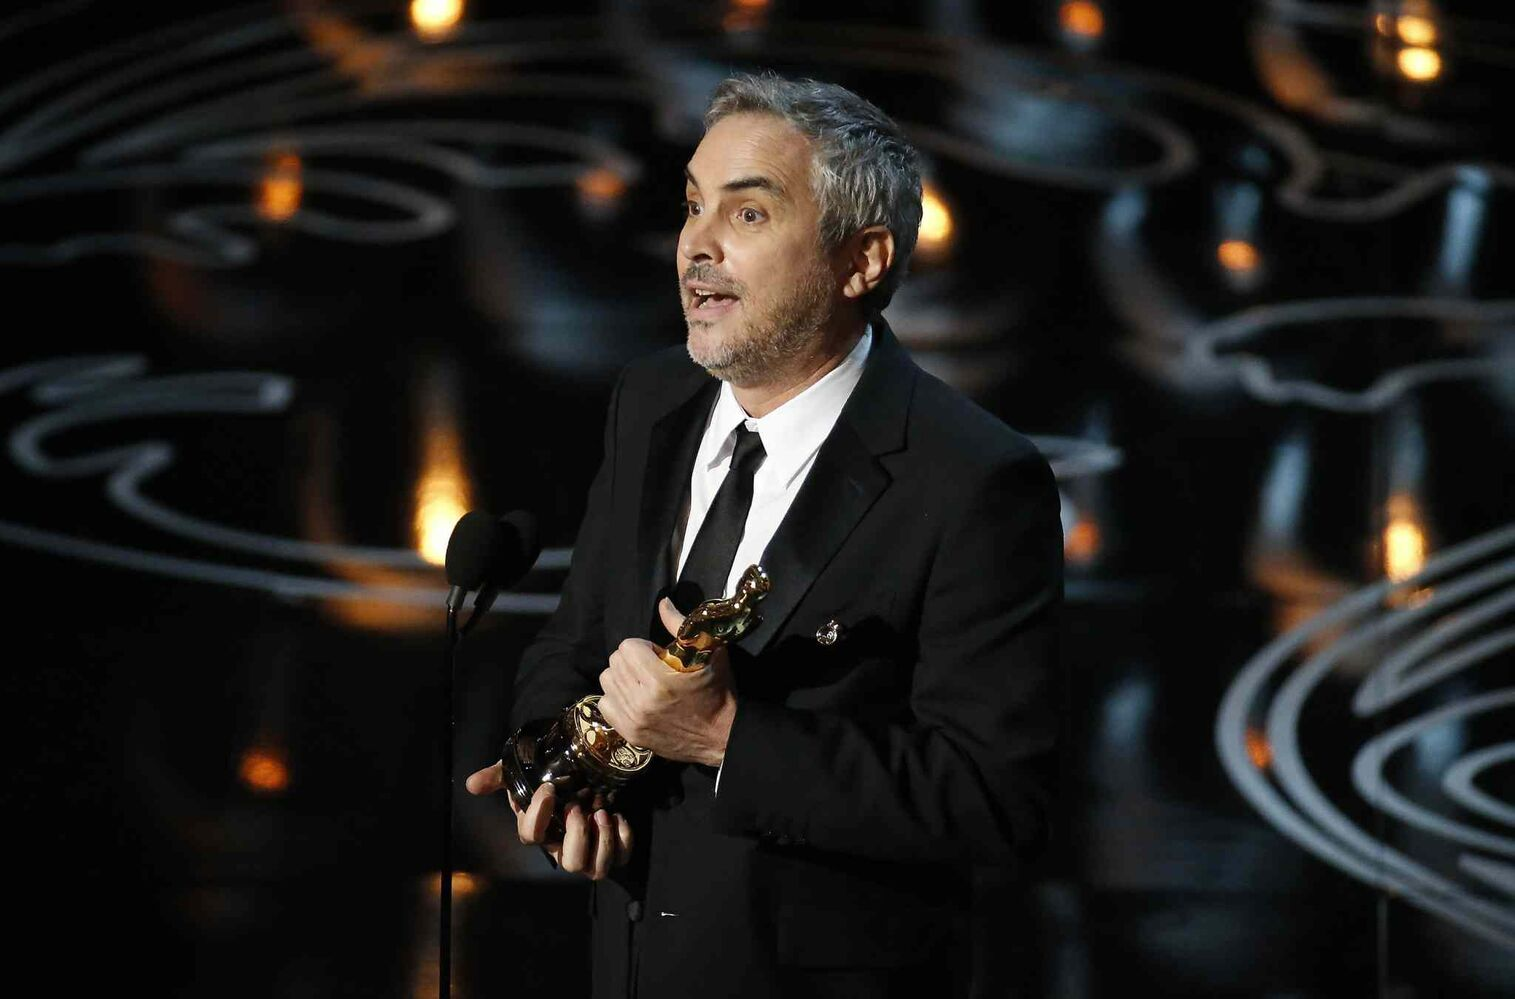 Alfonso Cuaron accepts the Academy Award for best director.   (Robert Gauthier / Tribune Media MCT)